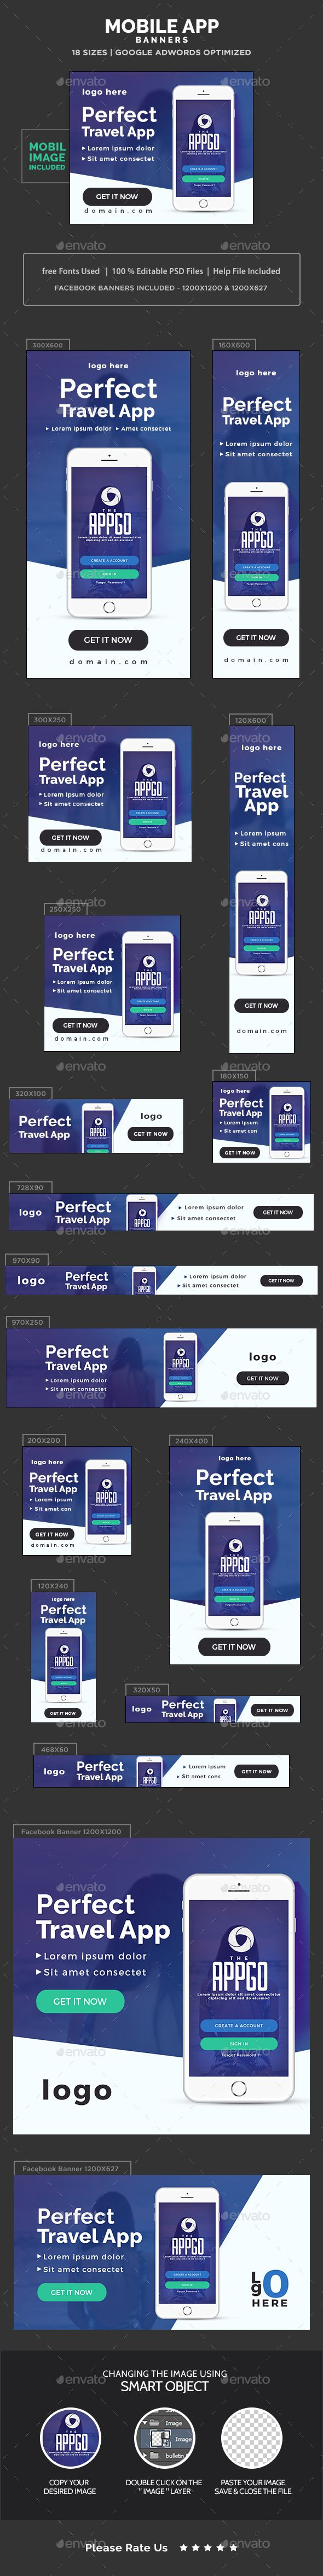 App Store Banners Design Template - Banners & Ads Web Elements Template PSD…